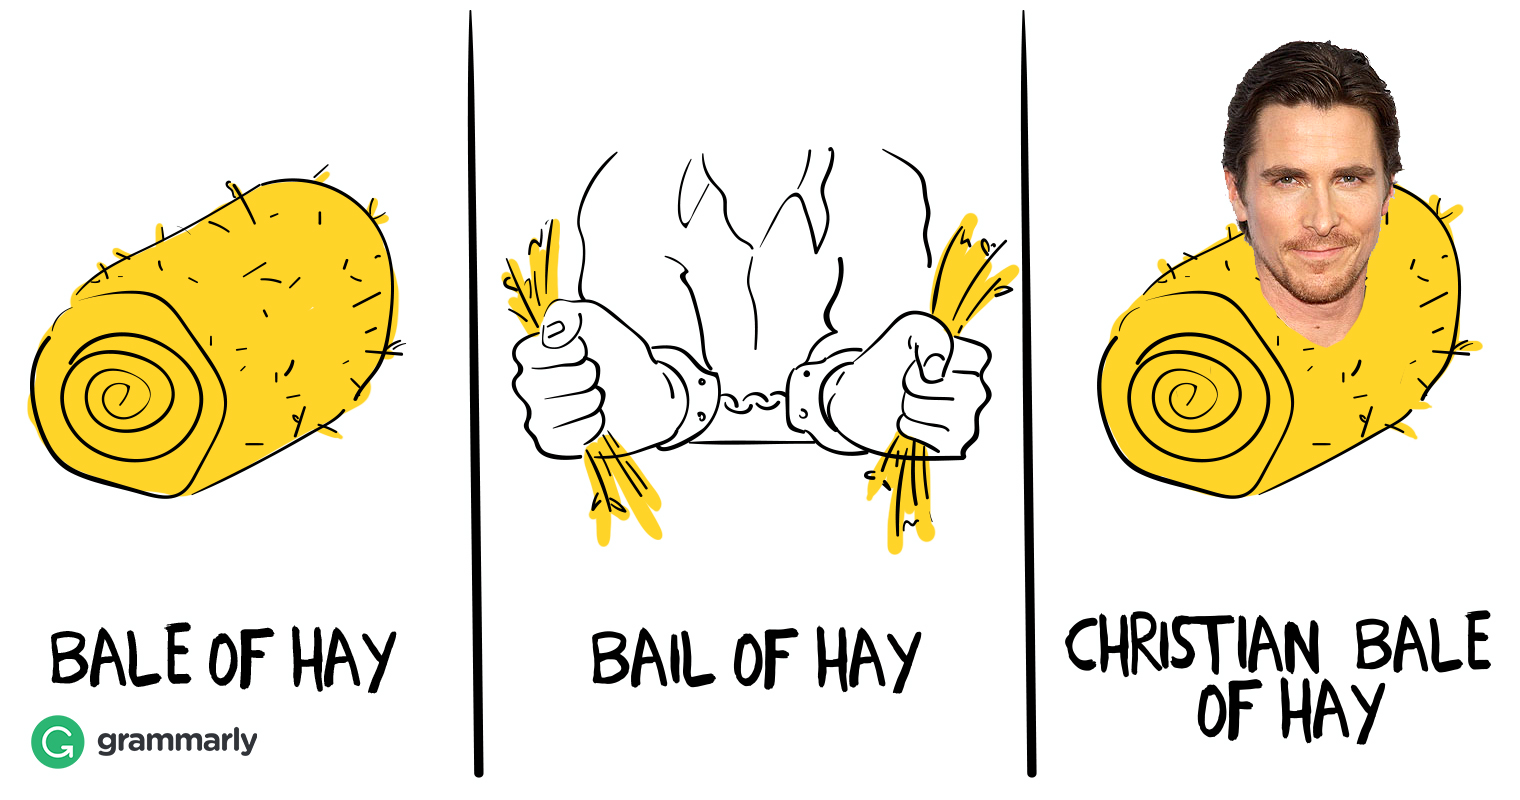 Bale of Hay Bail of Hay Christian Bale of Hay